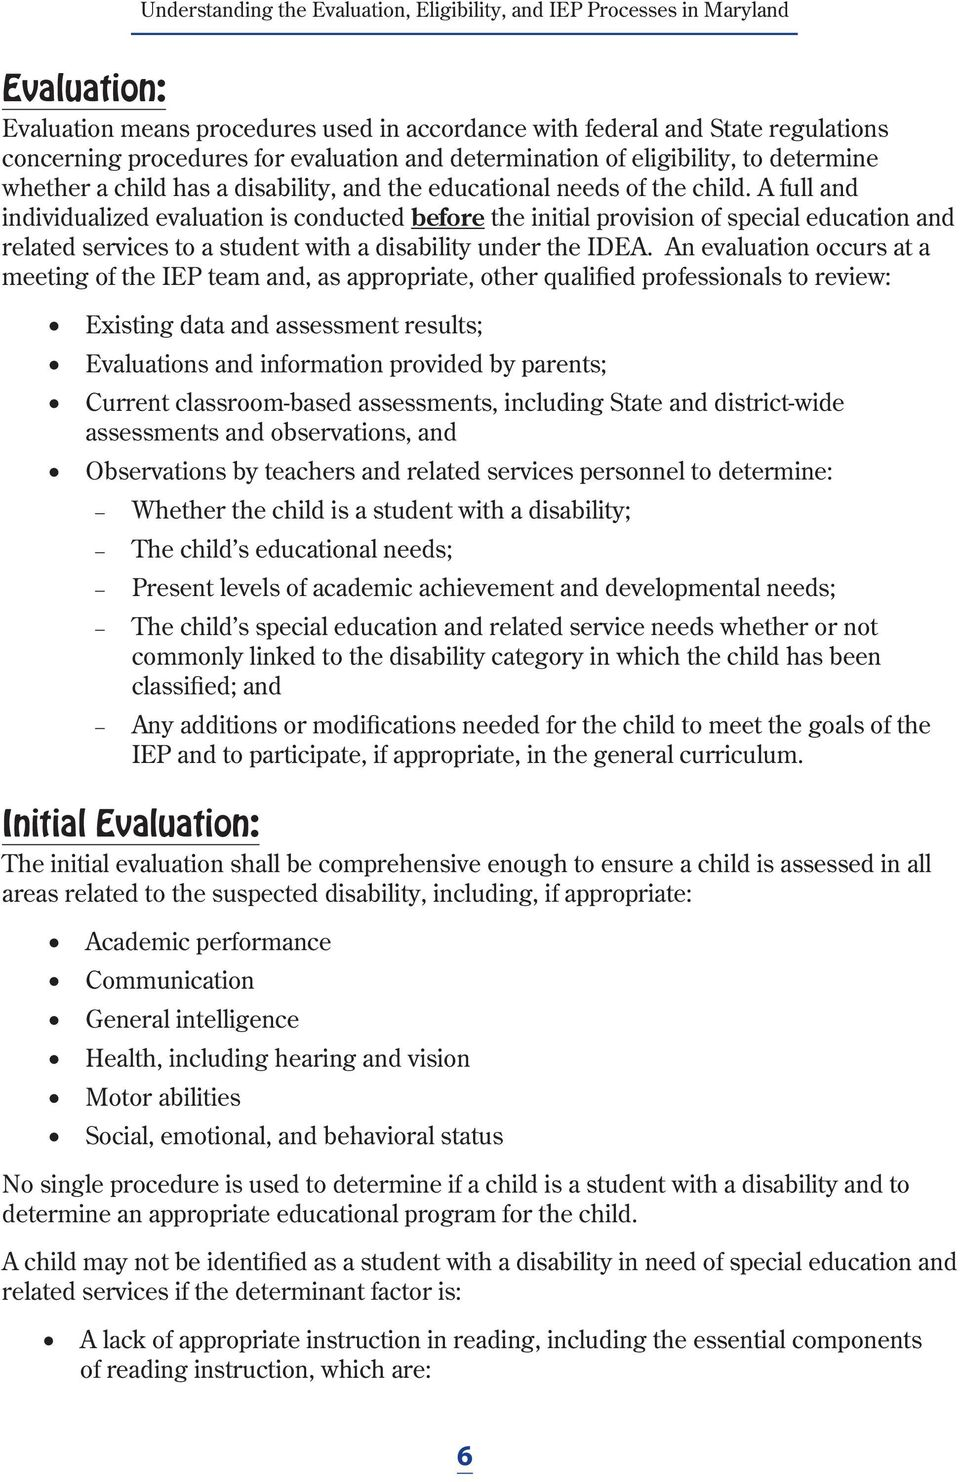 A full and individualized evaluation is conducted before the initial provision of special education and related services to a student with a disability under the IDEA.